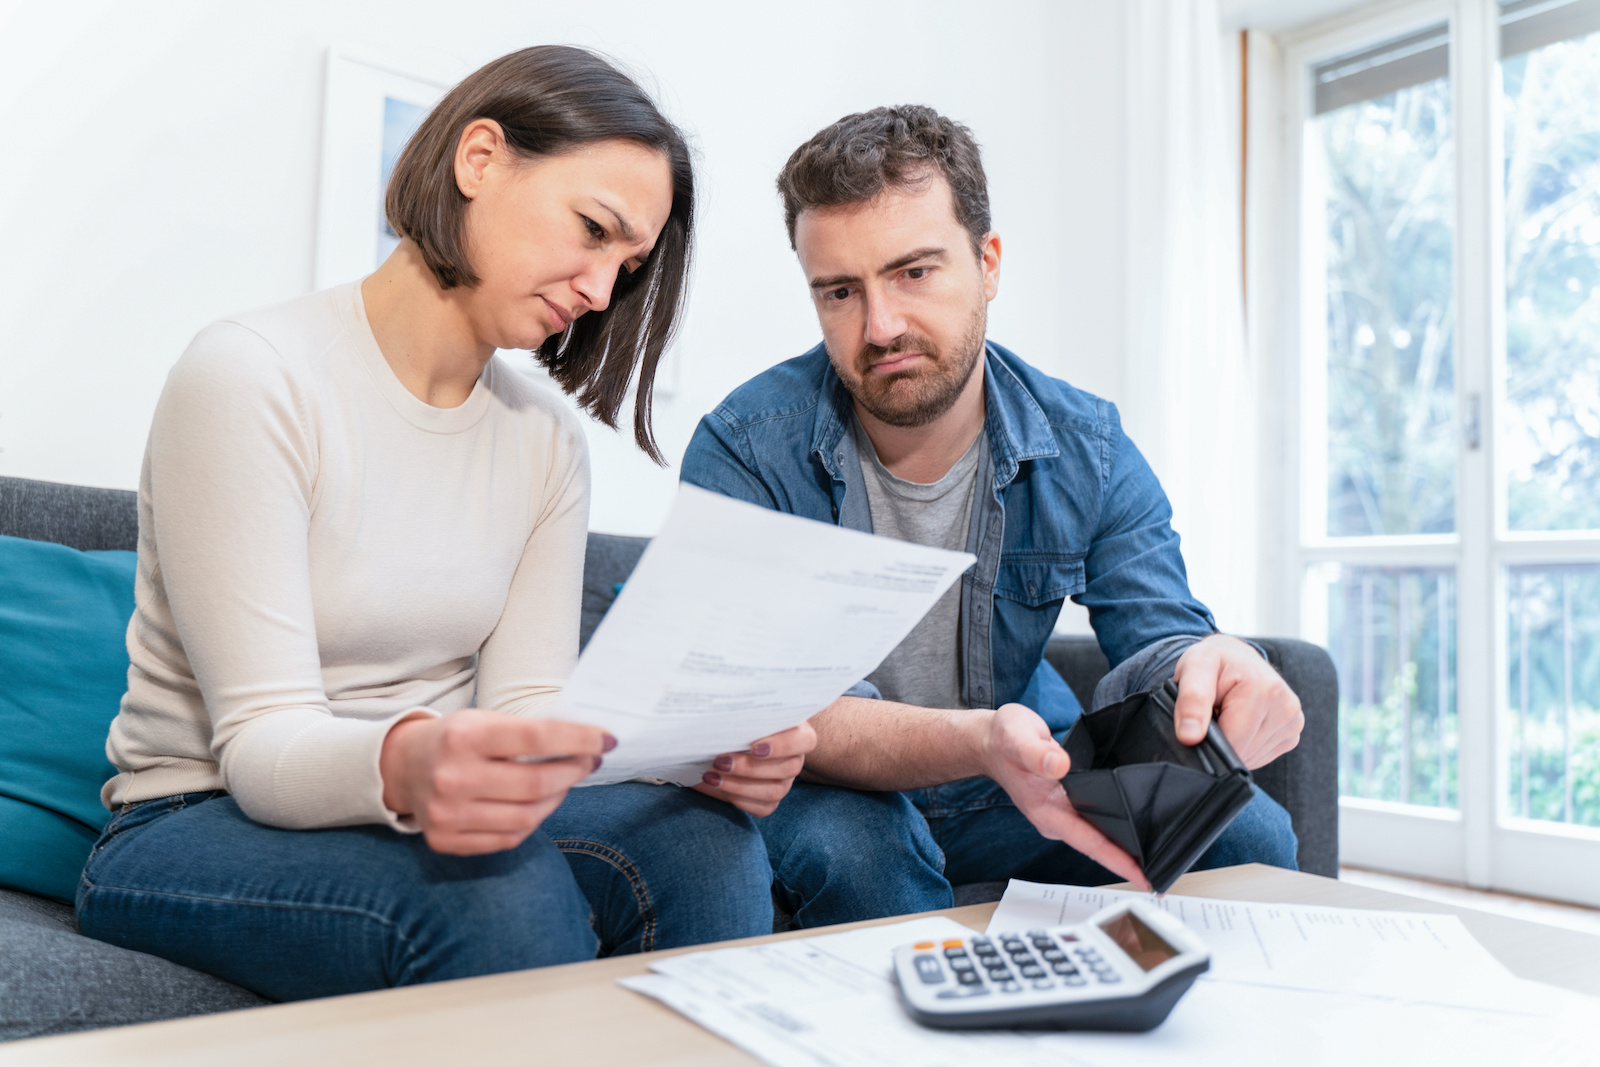 Do you have to pay back unemployment: A worried couple checks their payment information with a calculator